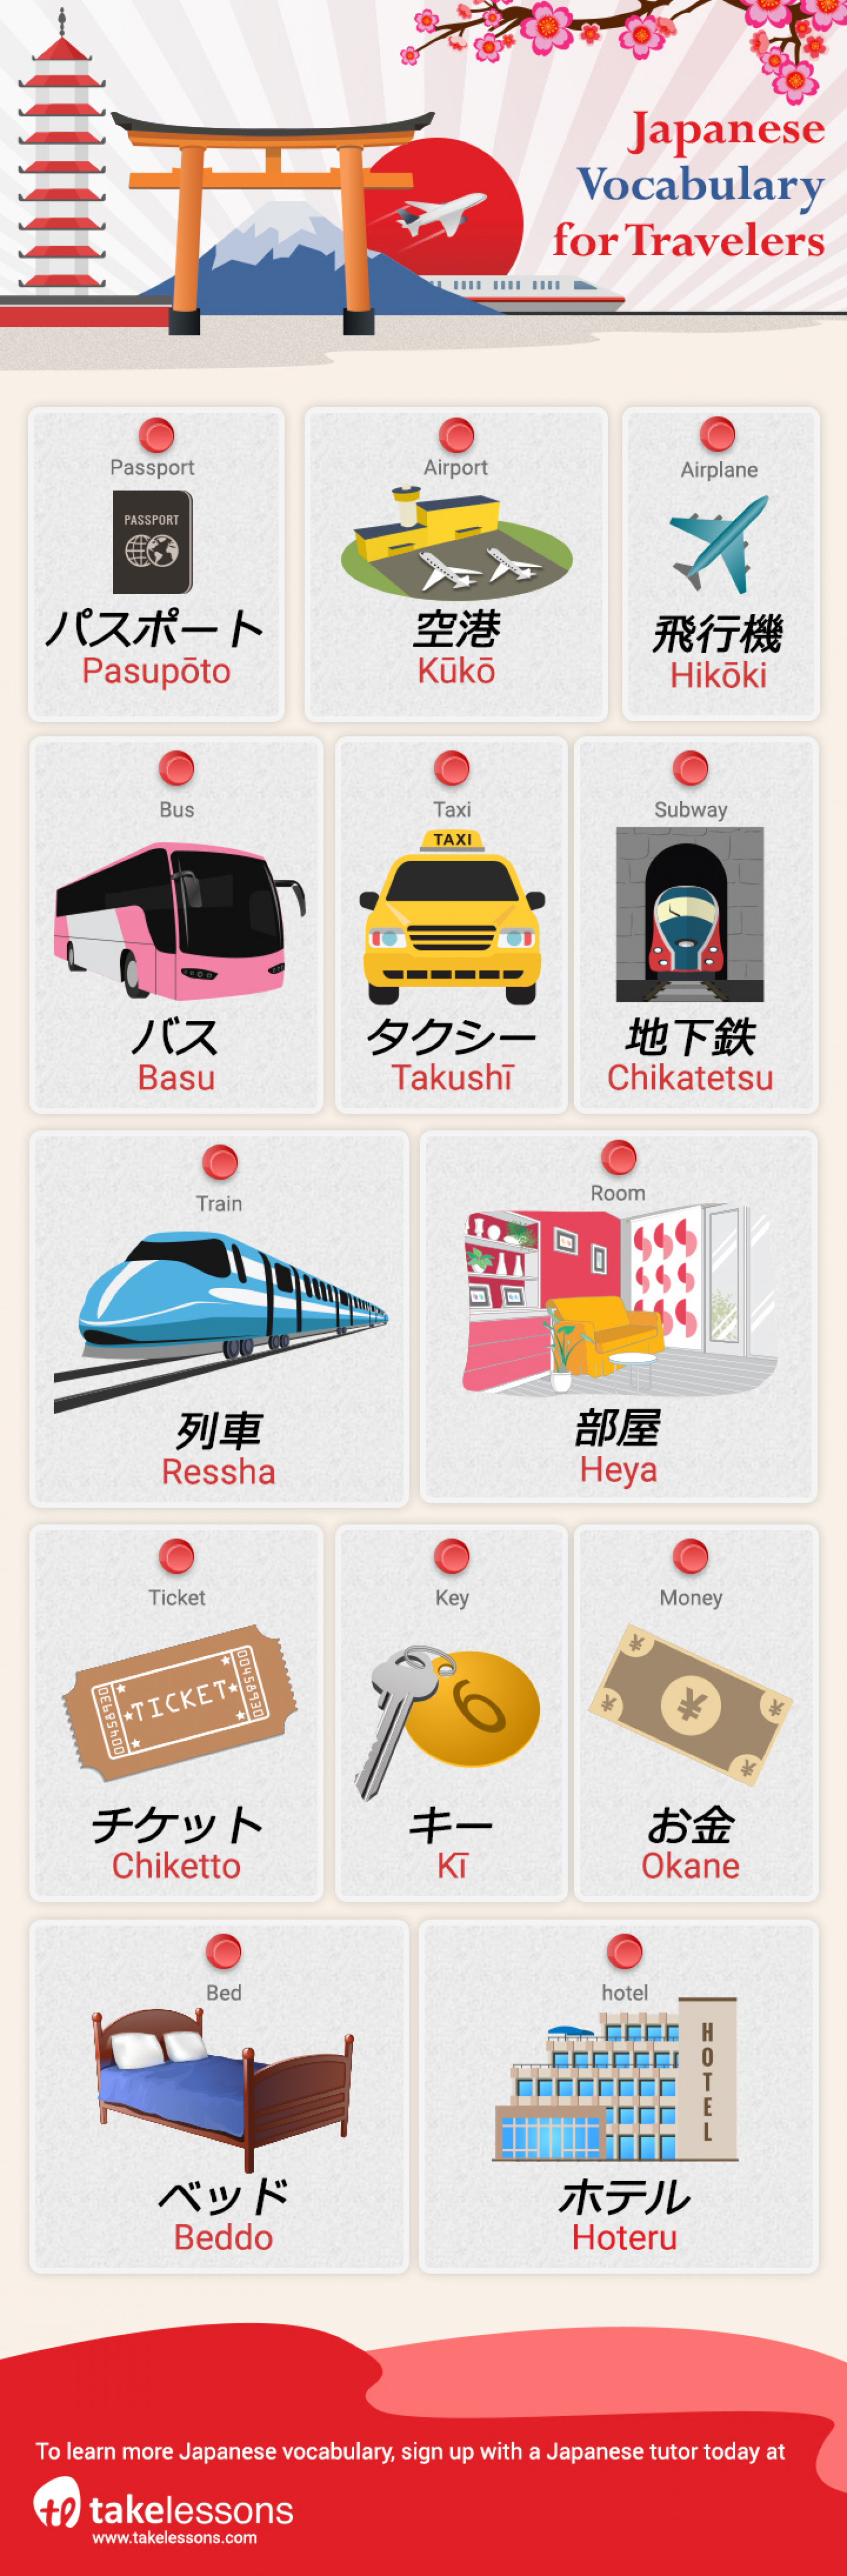 Essential Japanese Vocabulary For Travelers